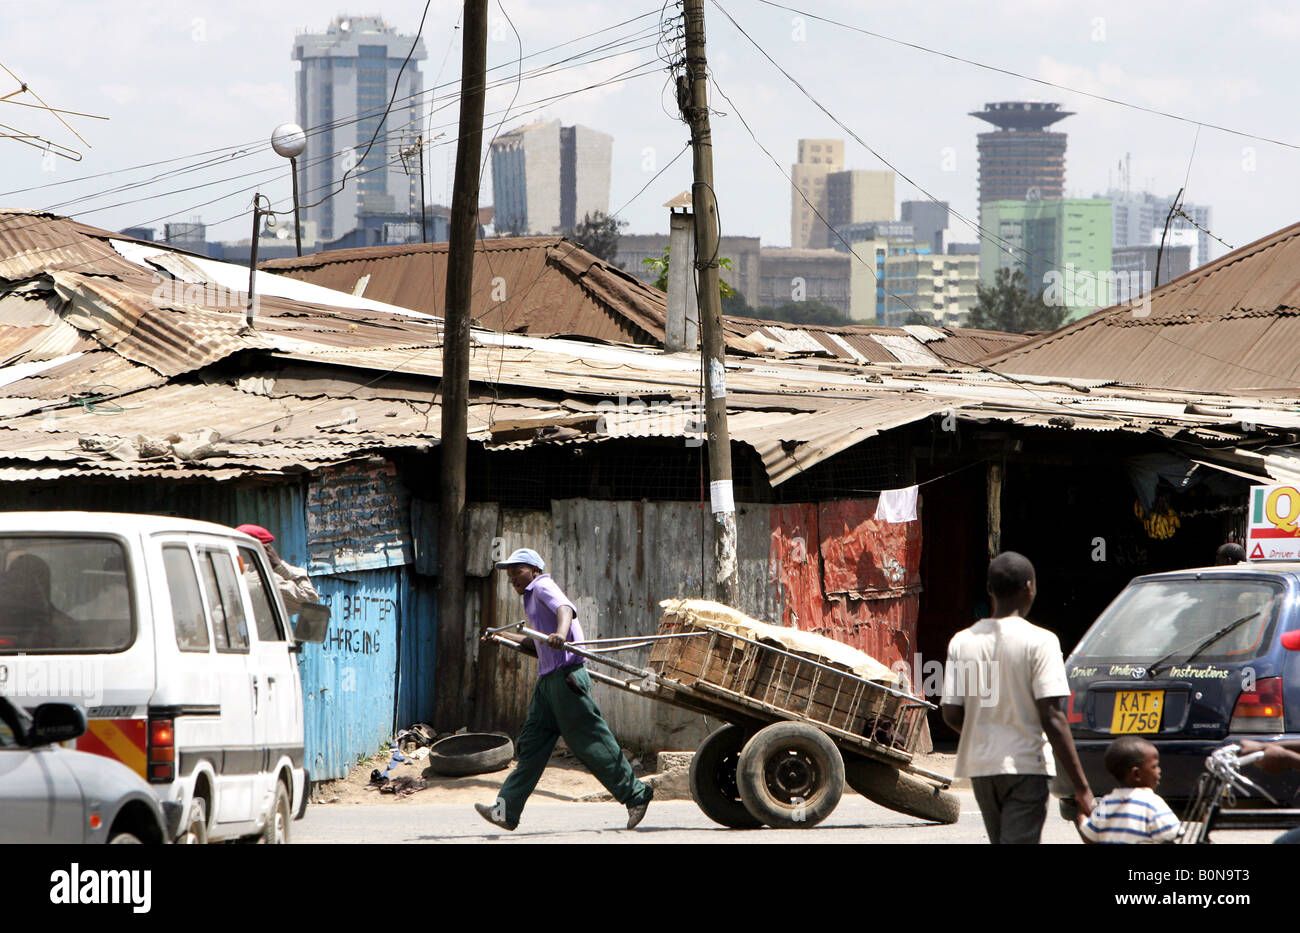 Slum Majengo with the skyline of modern Nairobi in the background - Stock Image